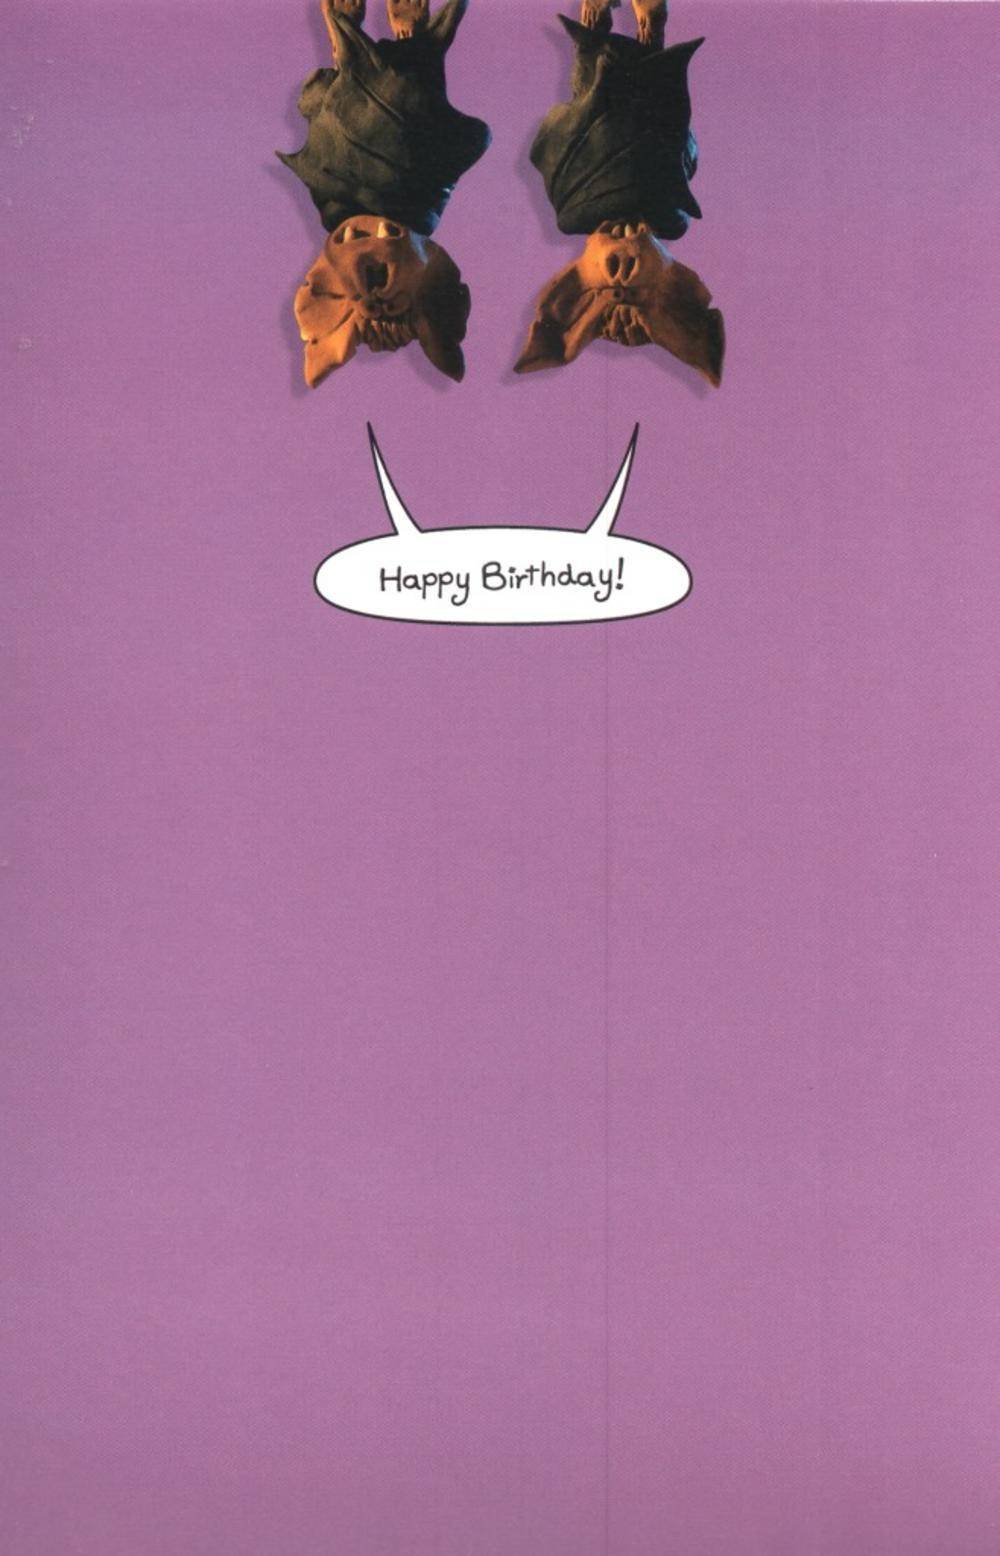 Funny Fear Incontinence Bats Birthday